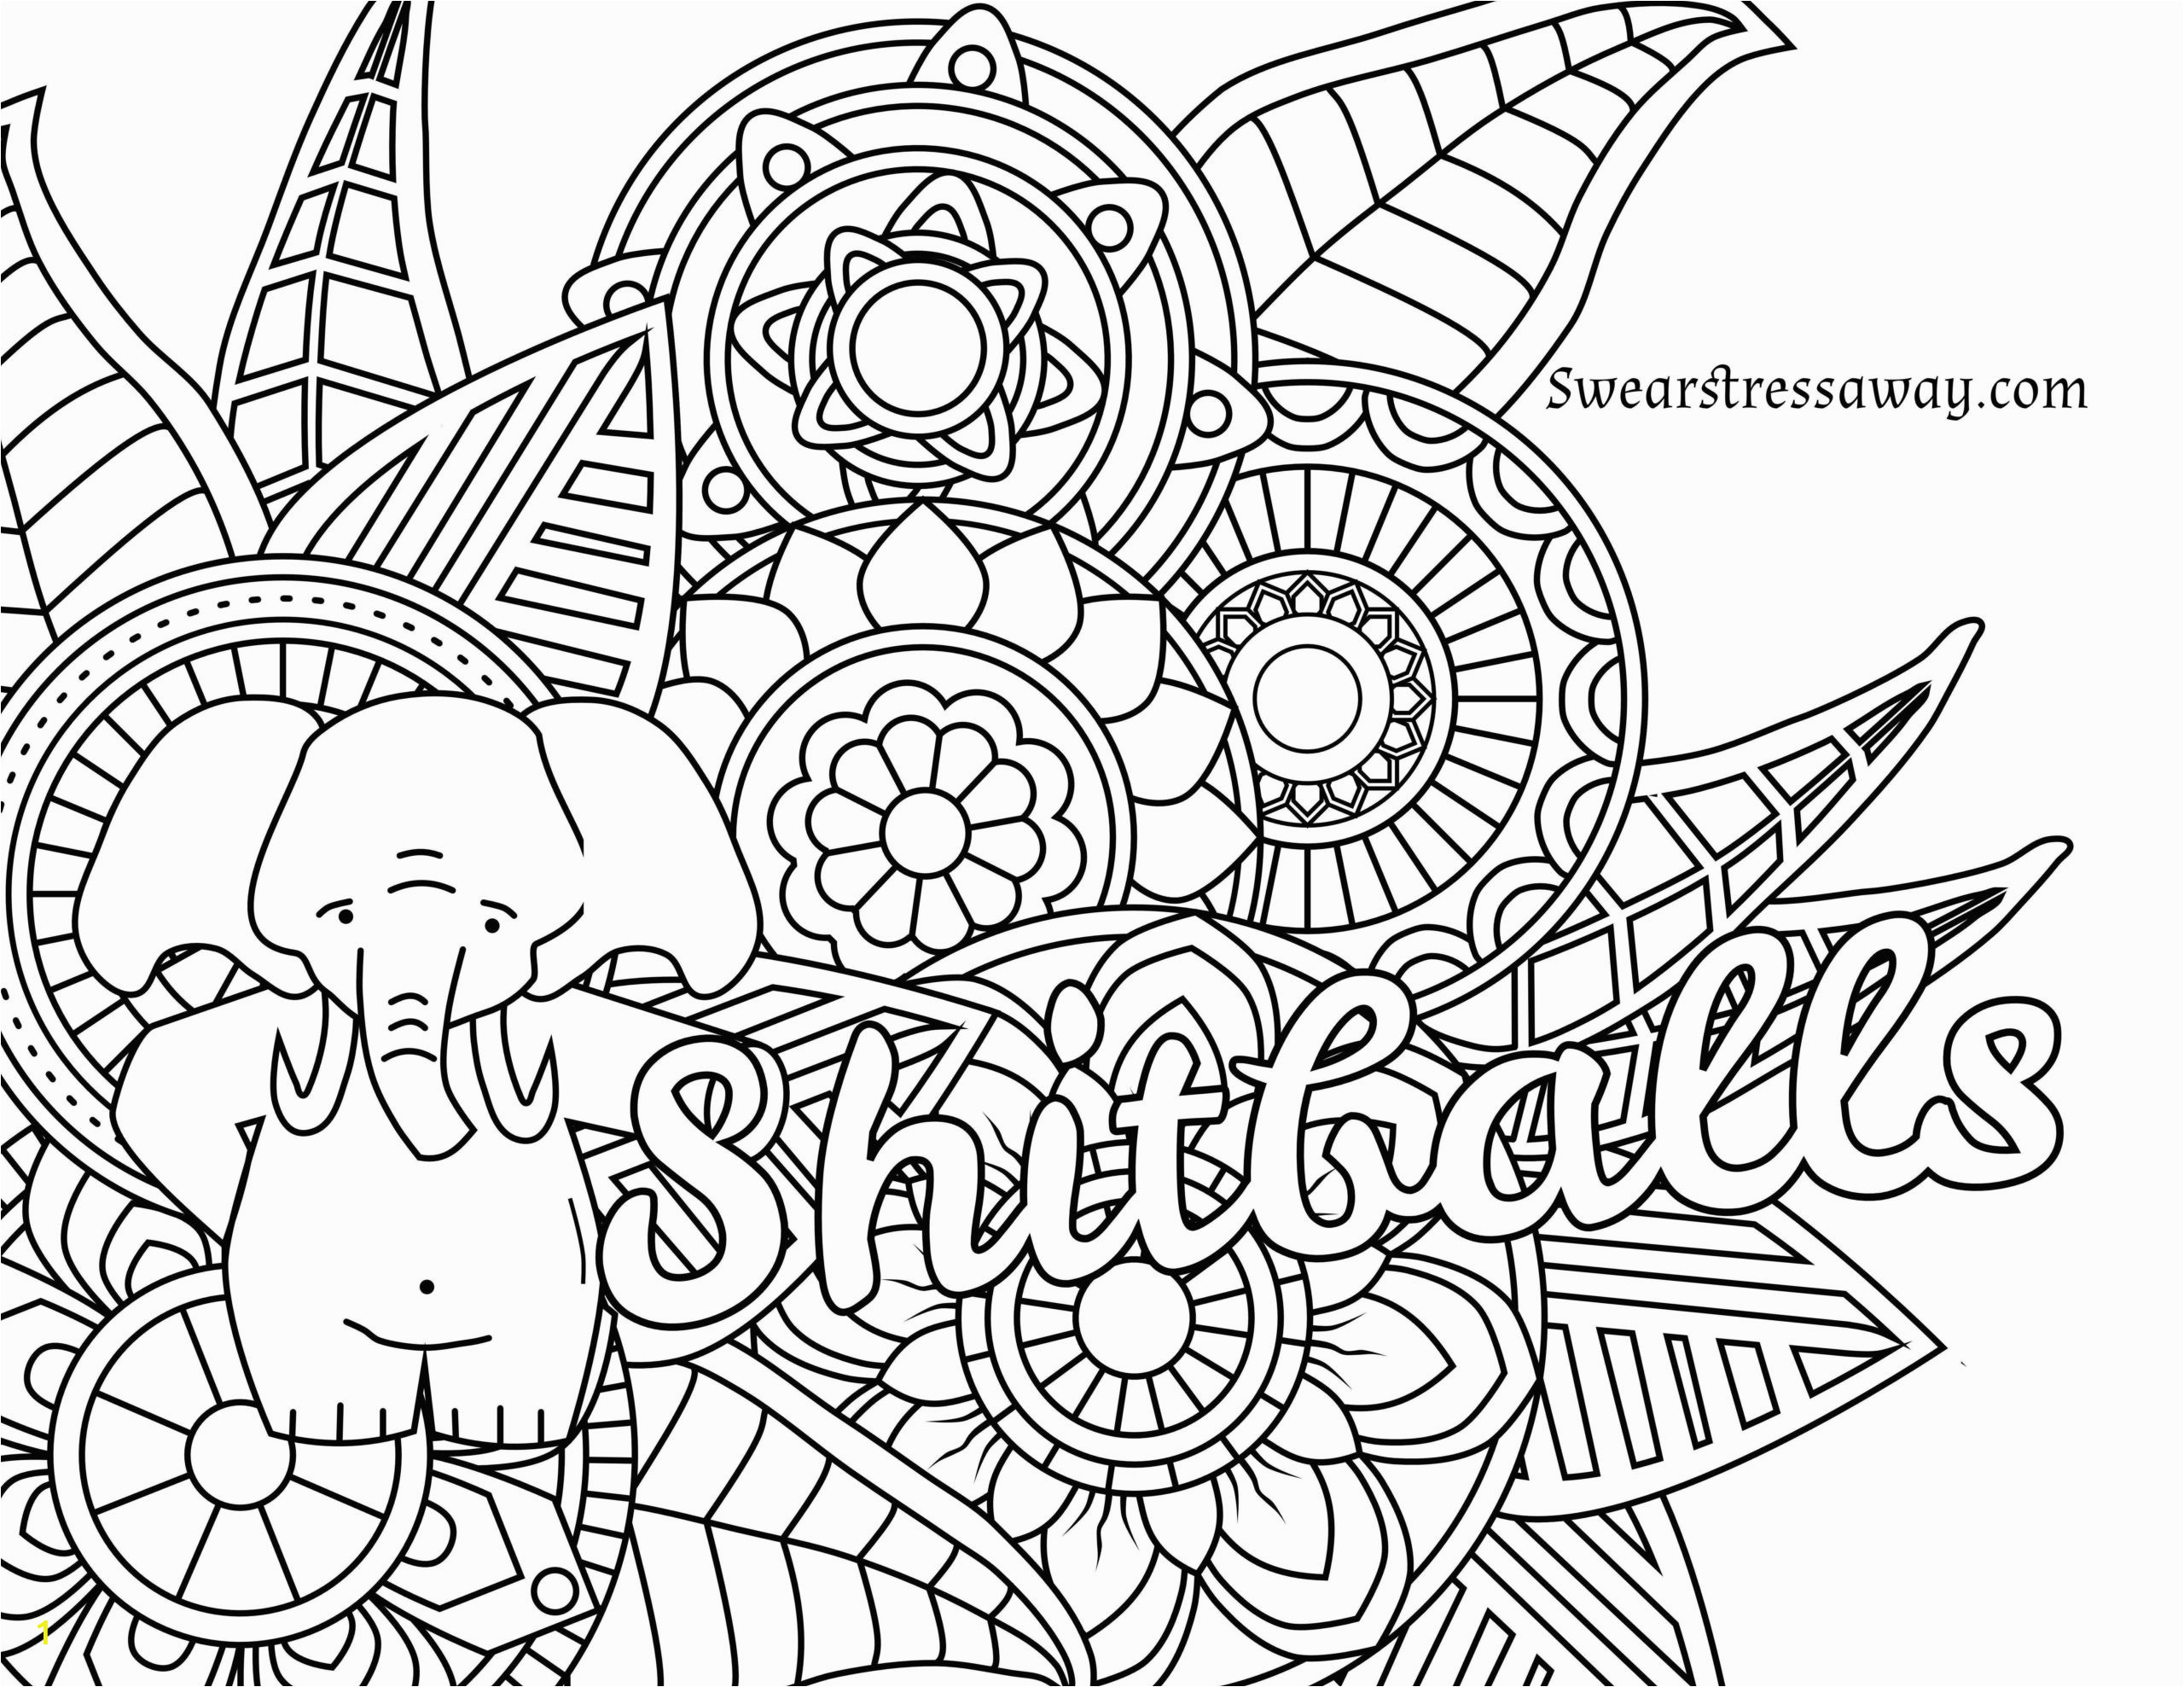 curse word coloring book lovely swearresh awesome pageor adult od of printable pages animals veggie tales for kids jvzooreview veggietales lyle the kindly viking dvd scaled